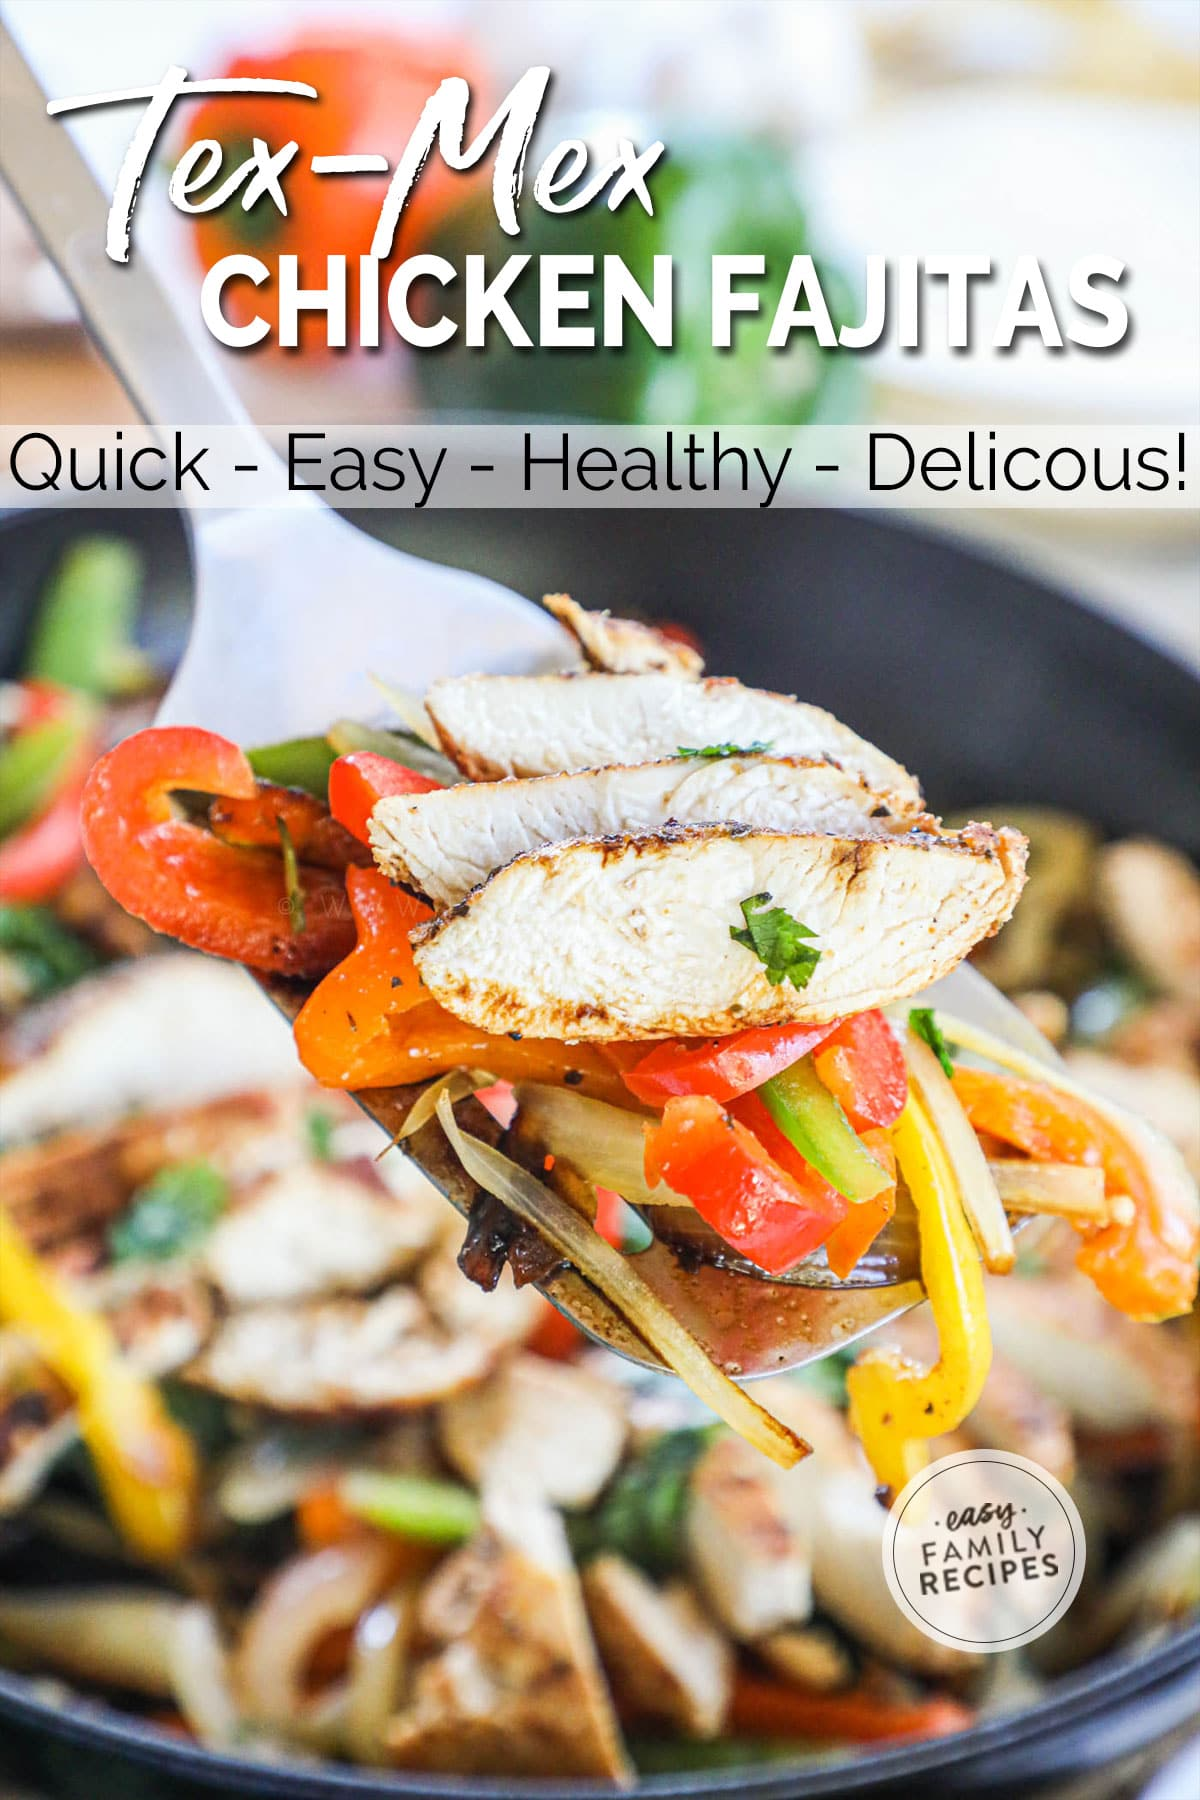 Sliced chicken breast fajitas with onions and bell peppers